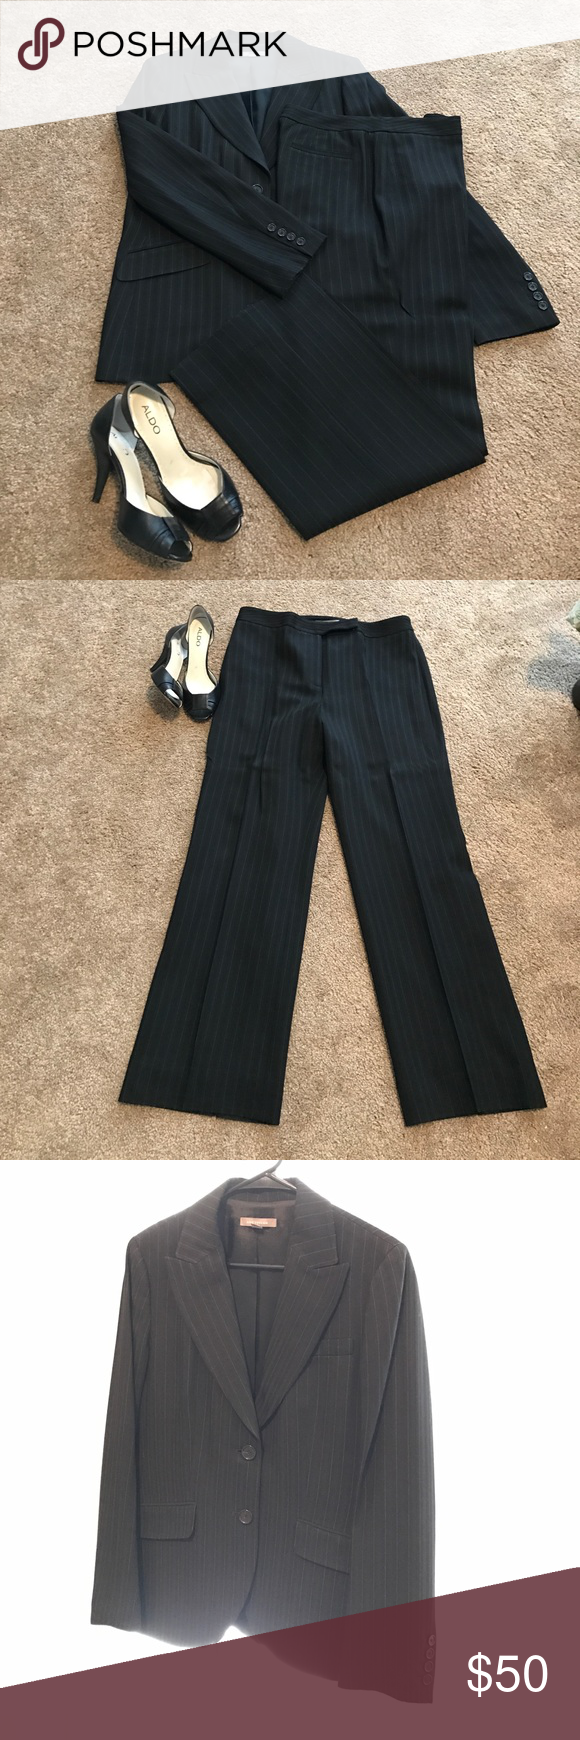 "Ann Taylor Black Pun Striped Suit (sz 10) Used fully lined black pin striped suit.  In excellent condition. Inseam 29"". Ann Taylor Other"